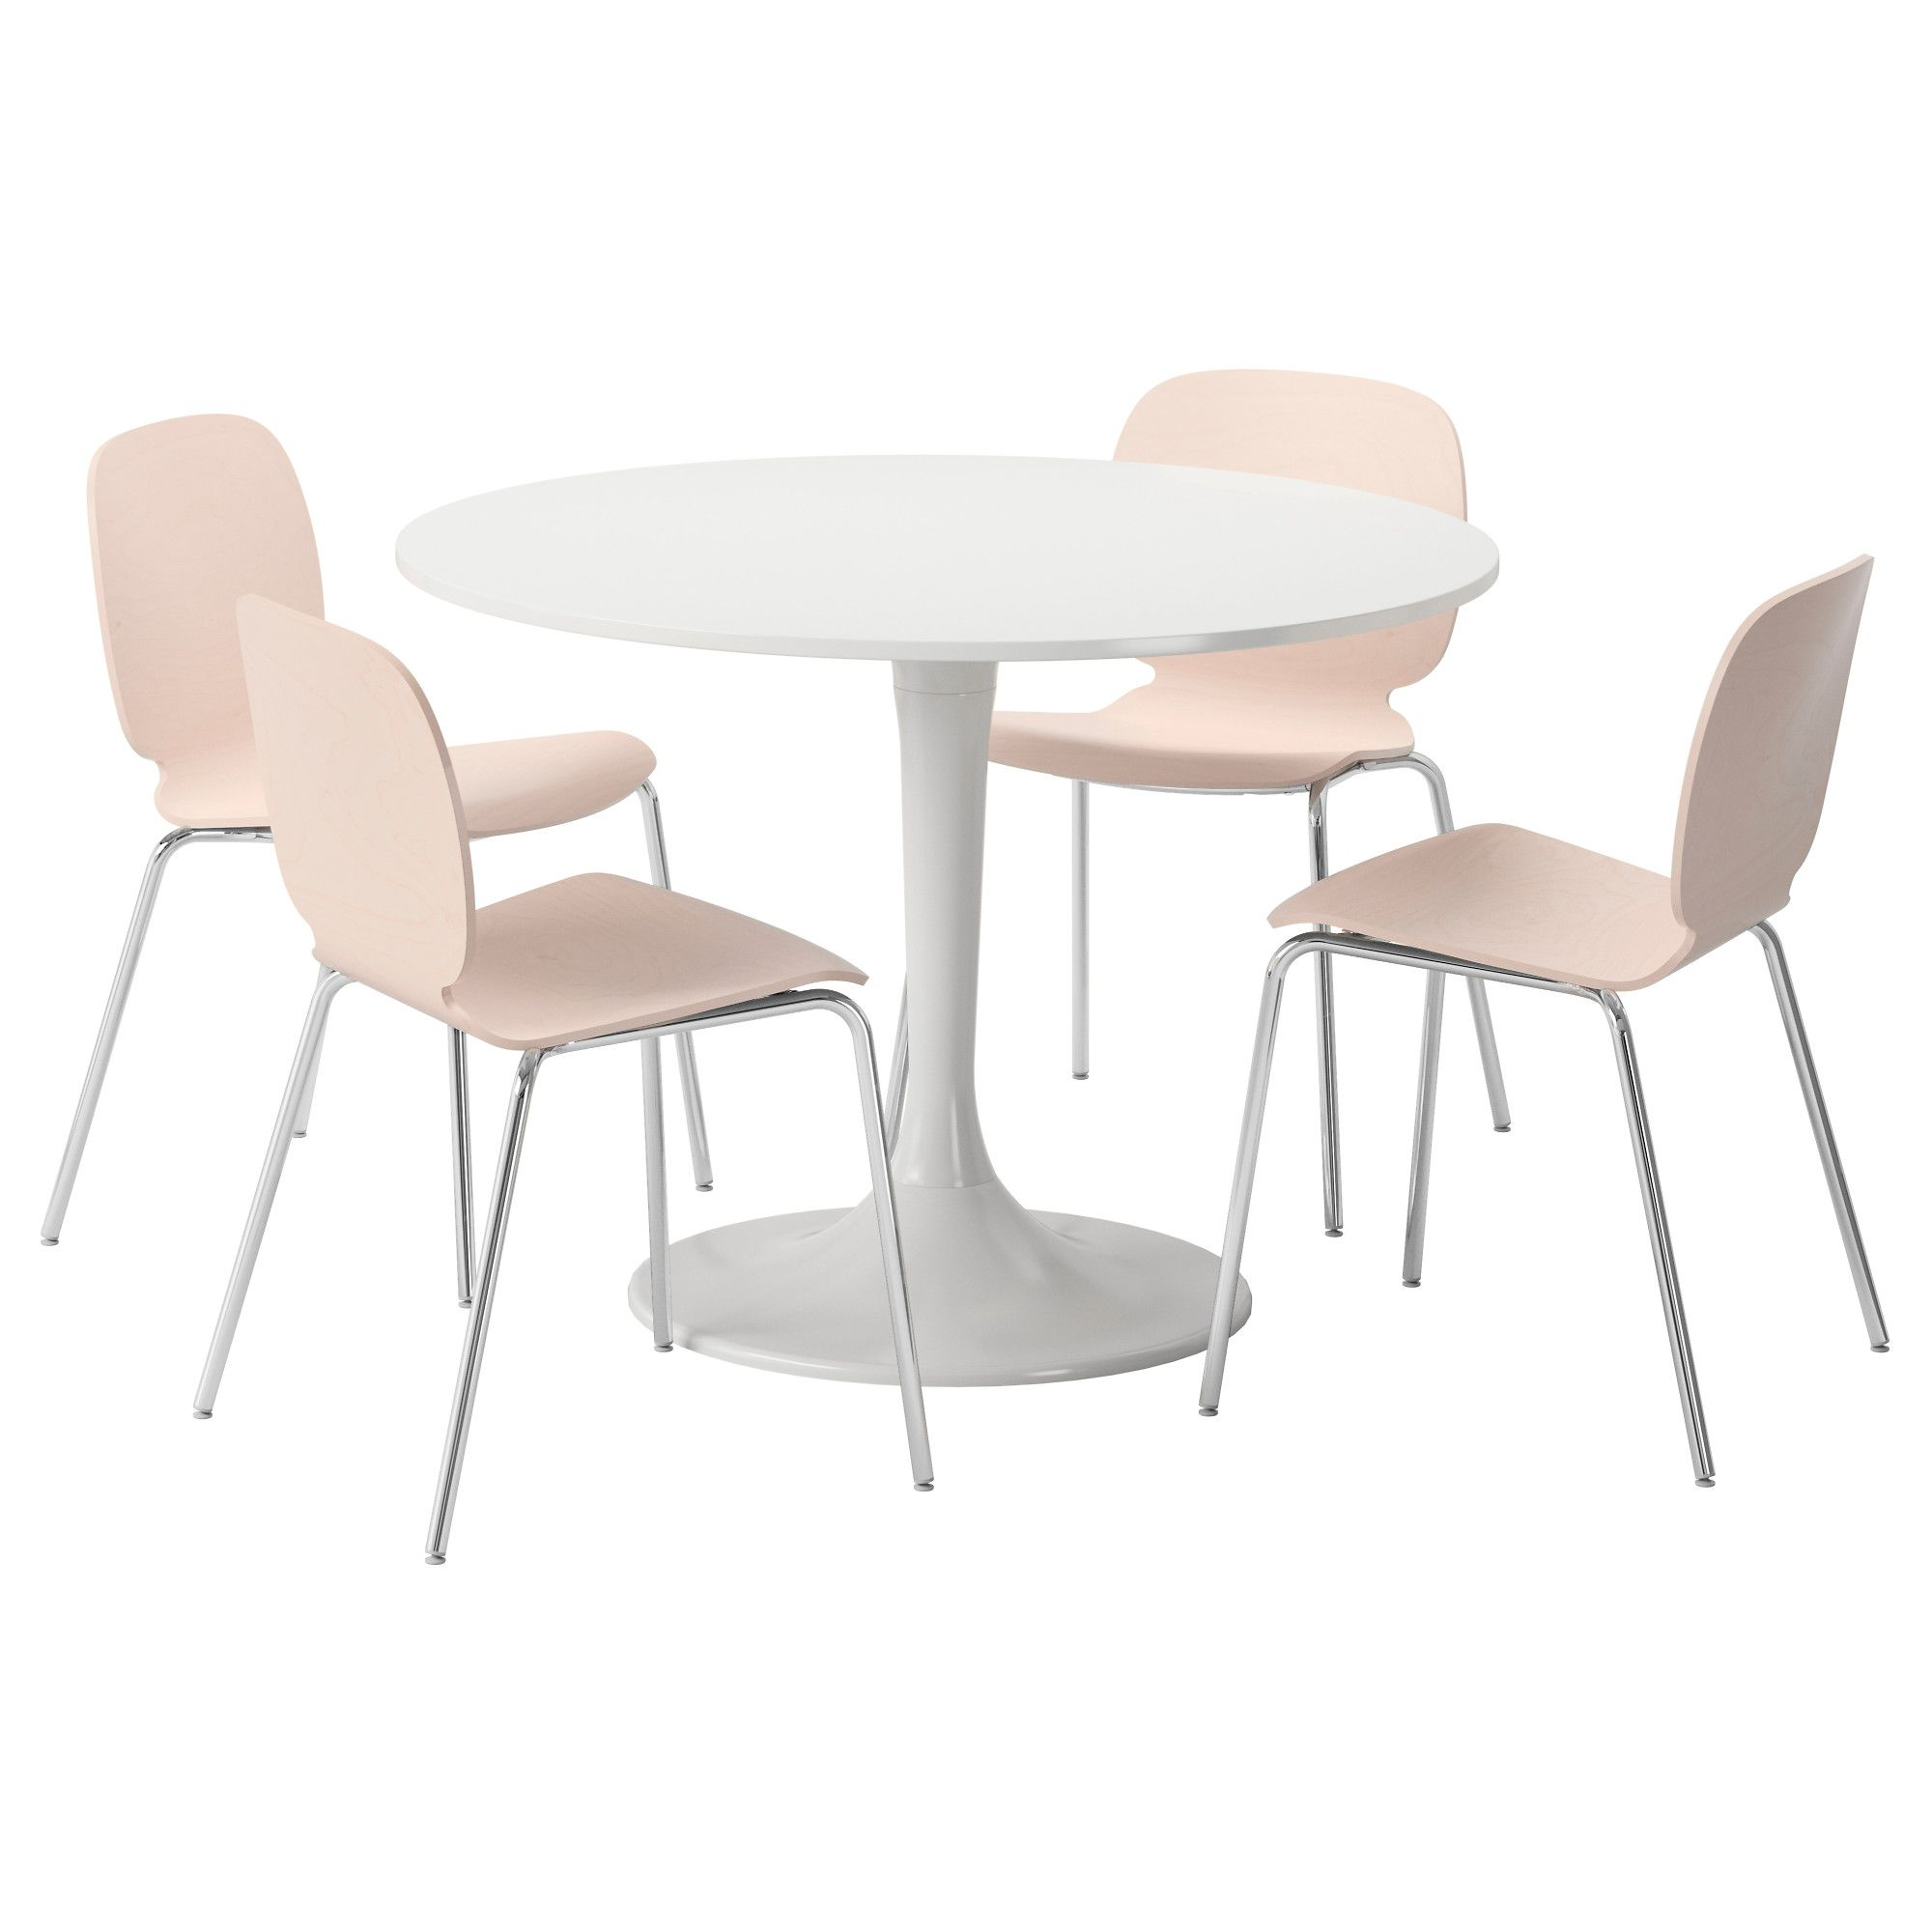 DOCKSTA Table and 4 chairs White/birch IKEA